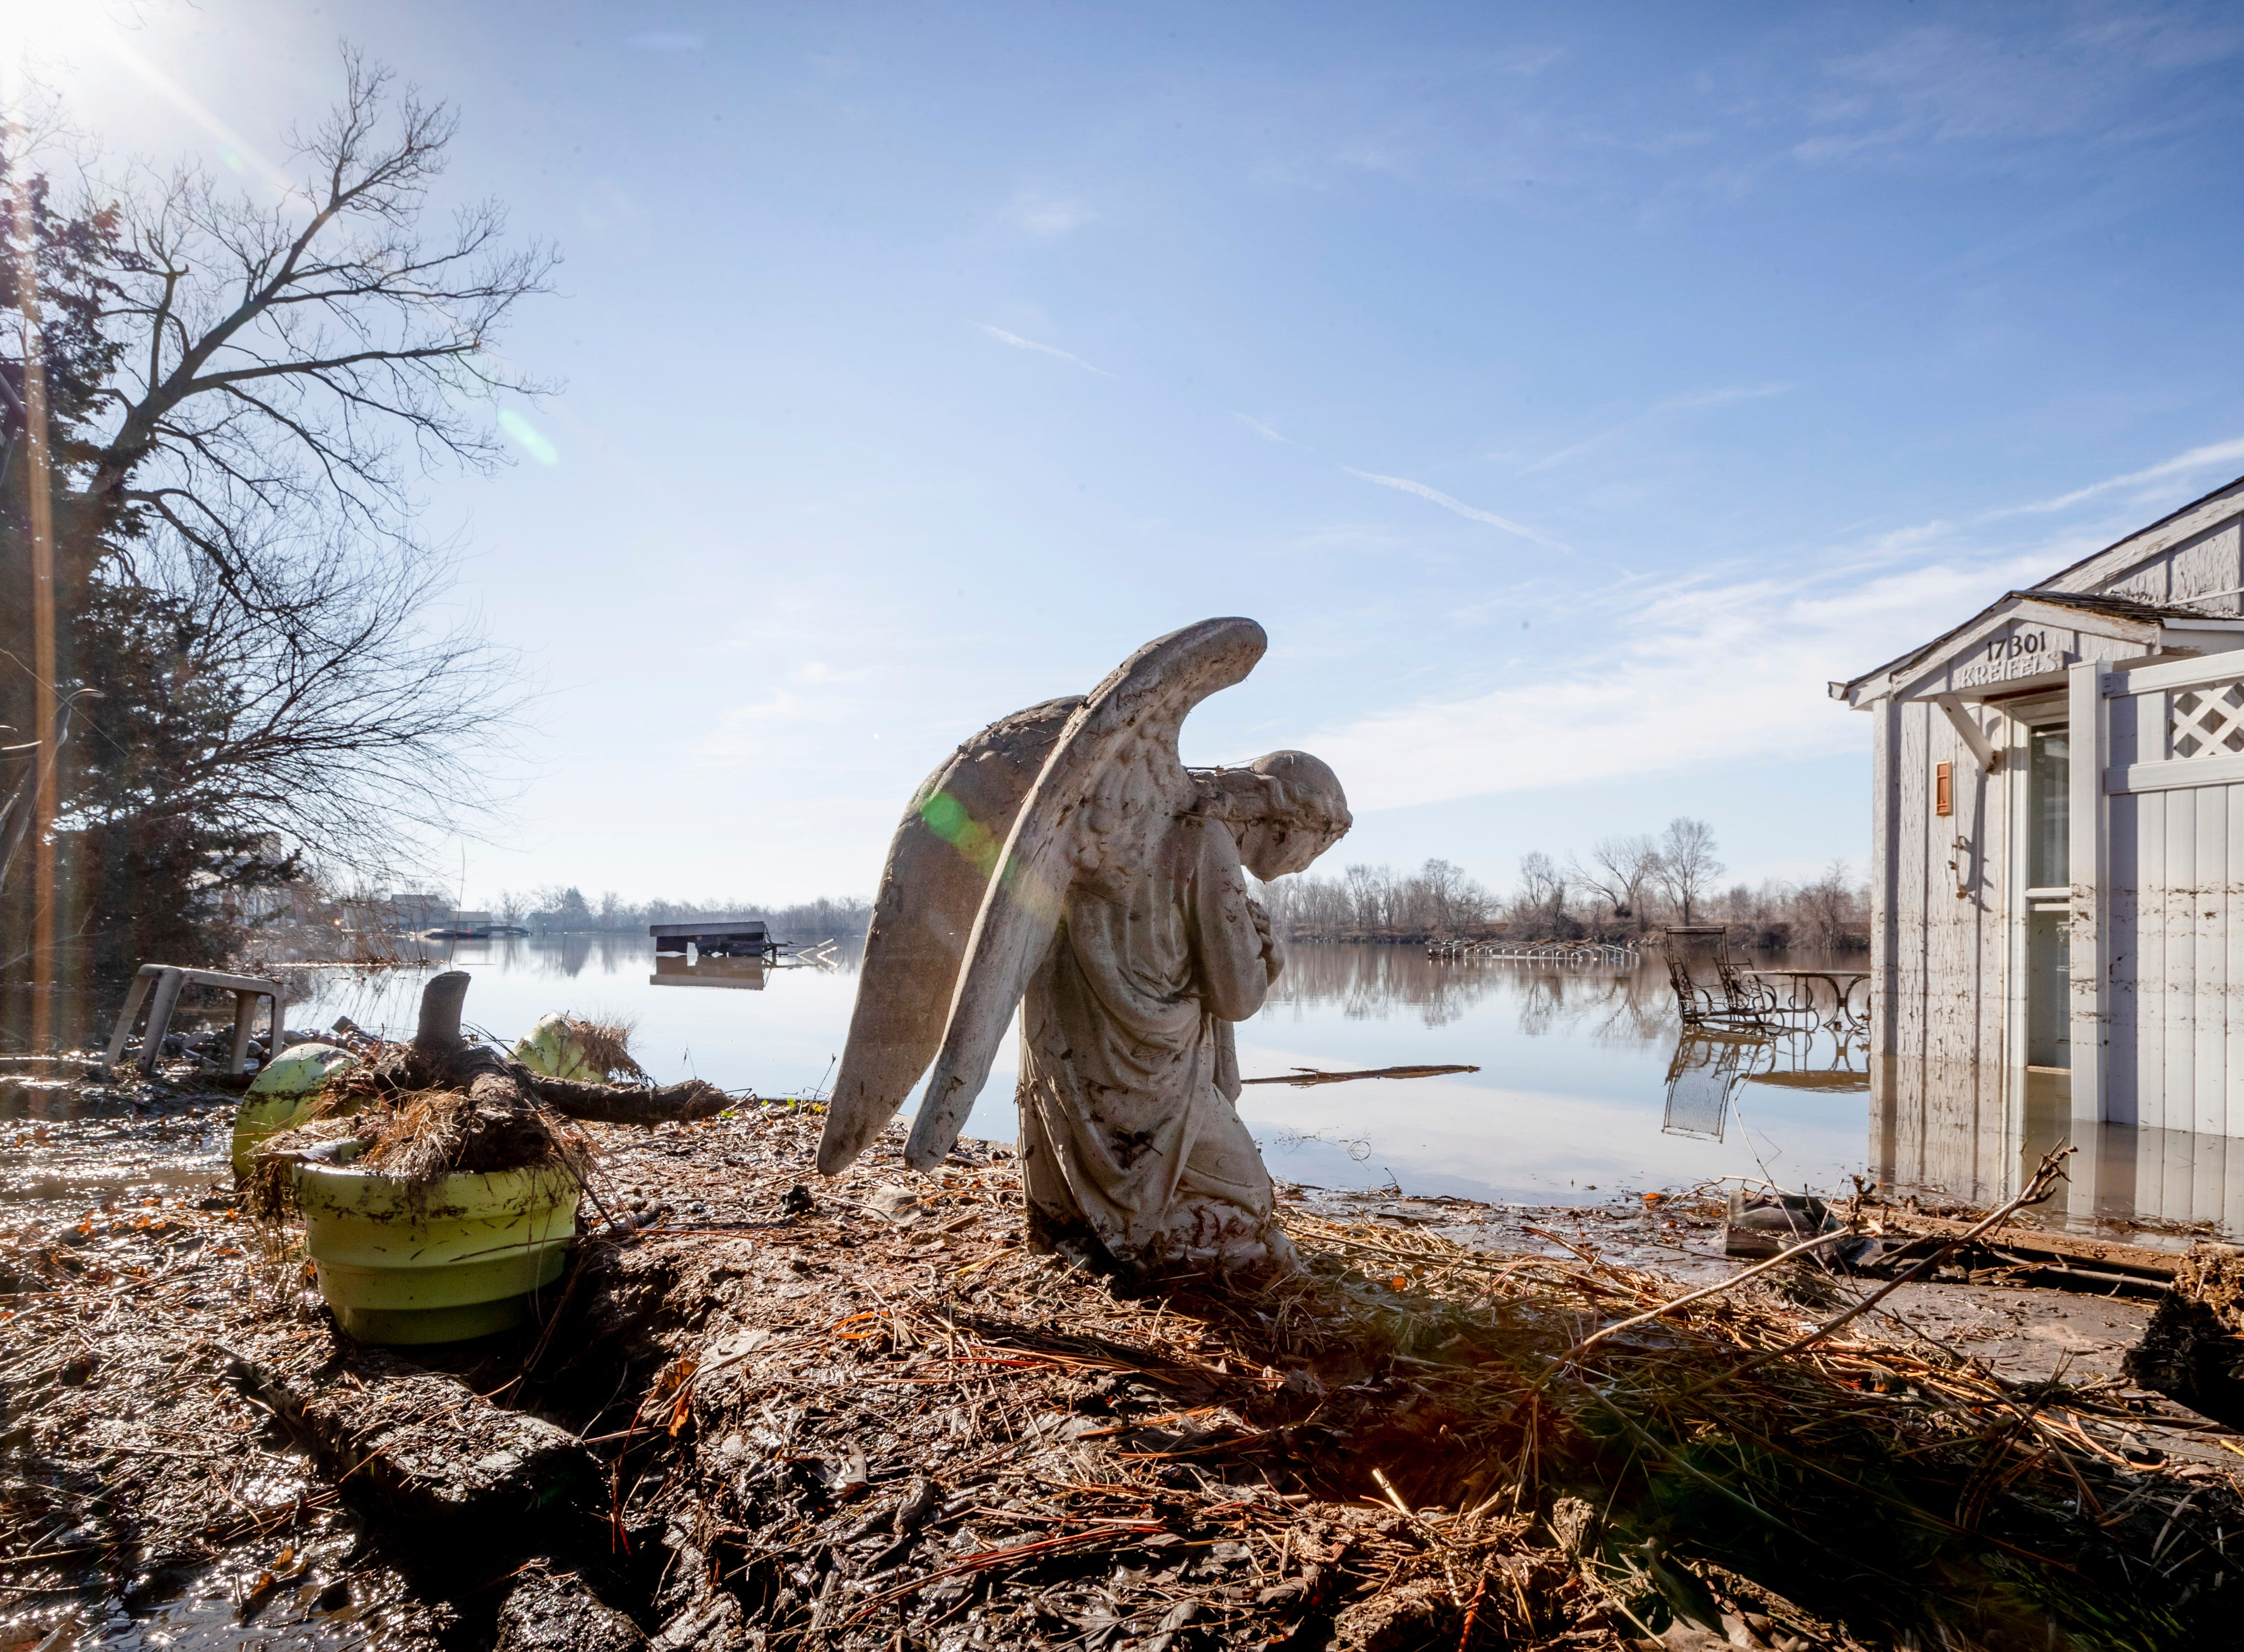 An angel statuary graces a yard near Hansen Lake Friday, March 22, 2019, in Bellevue, Neb. Residents were allowed into the area for the first time since floodwaters overtook several homes. Flooding in Nebraska has caused an estimated $1.4 billion in damage. The state received Trump's federal disaster assistance approval on Thursday.